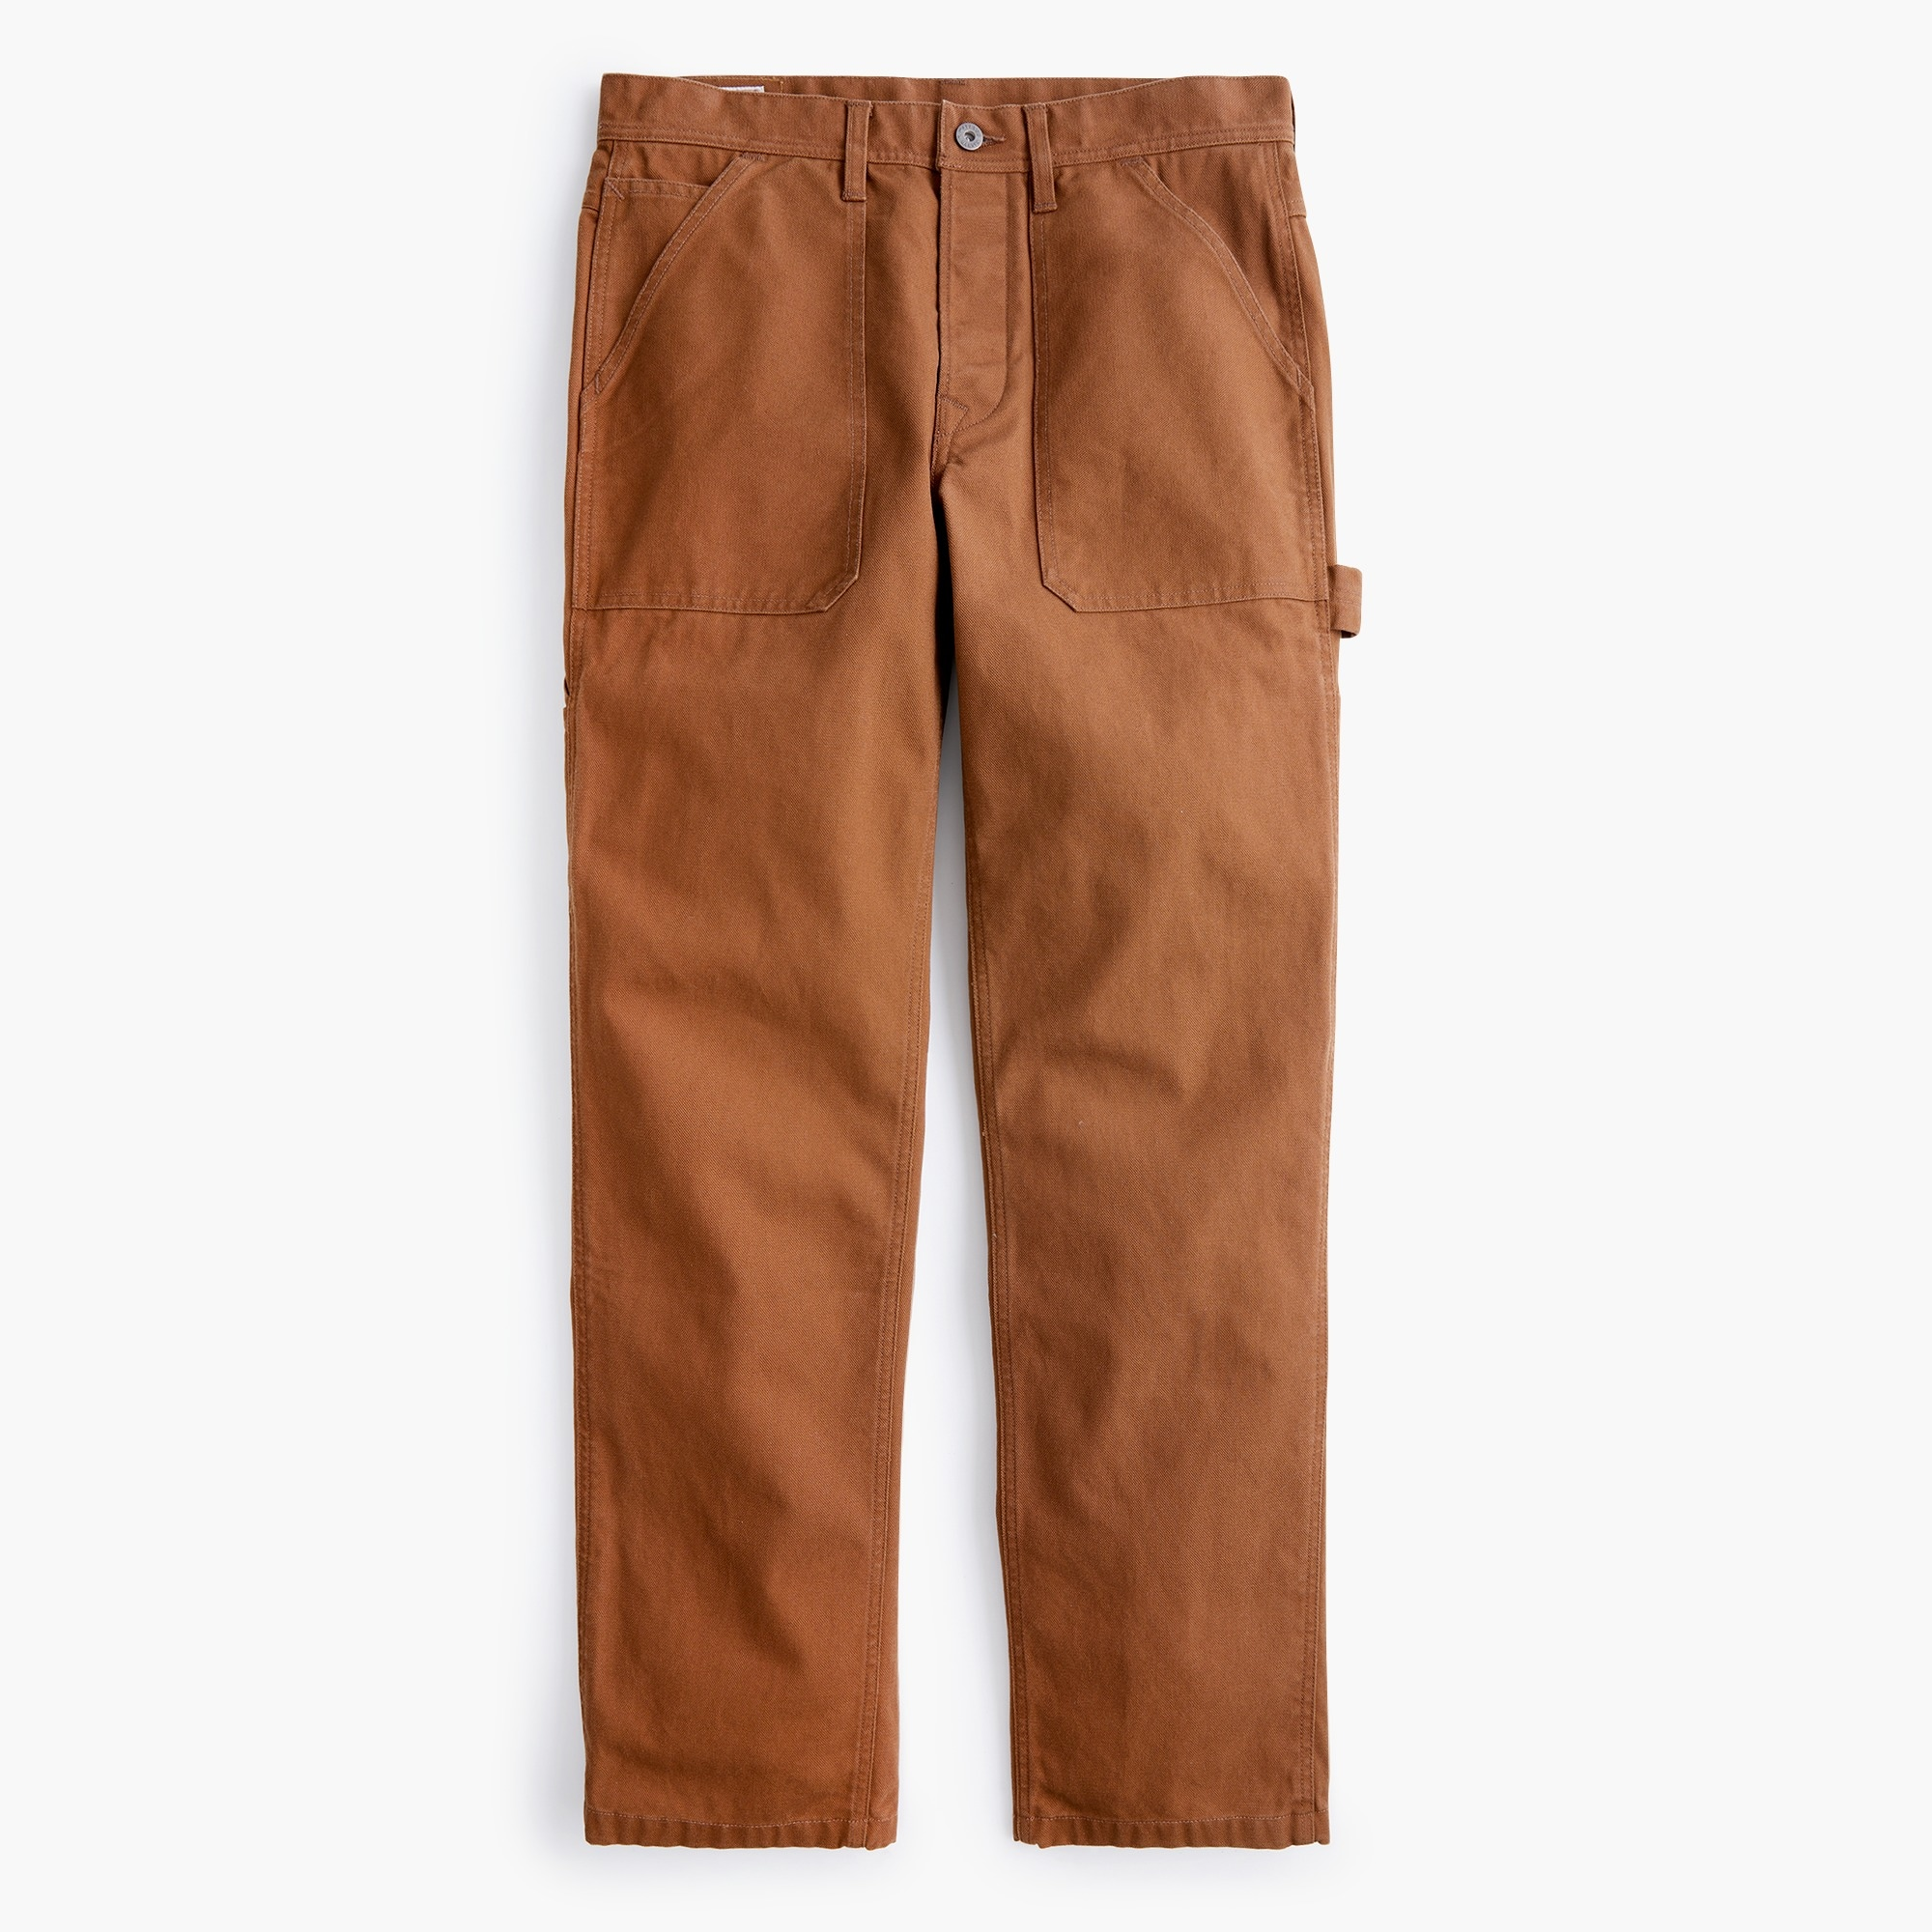 Wallace & Barnes painter camp pant in duck canvas